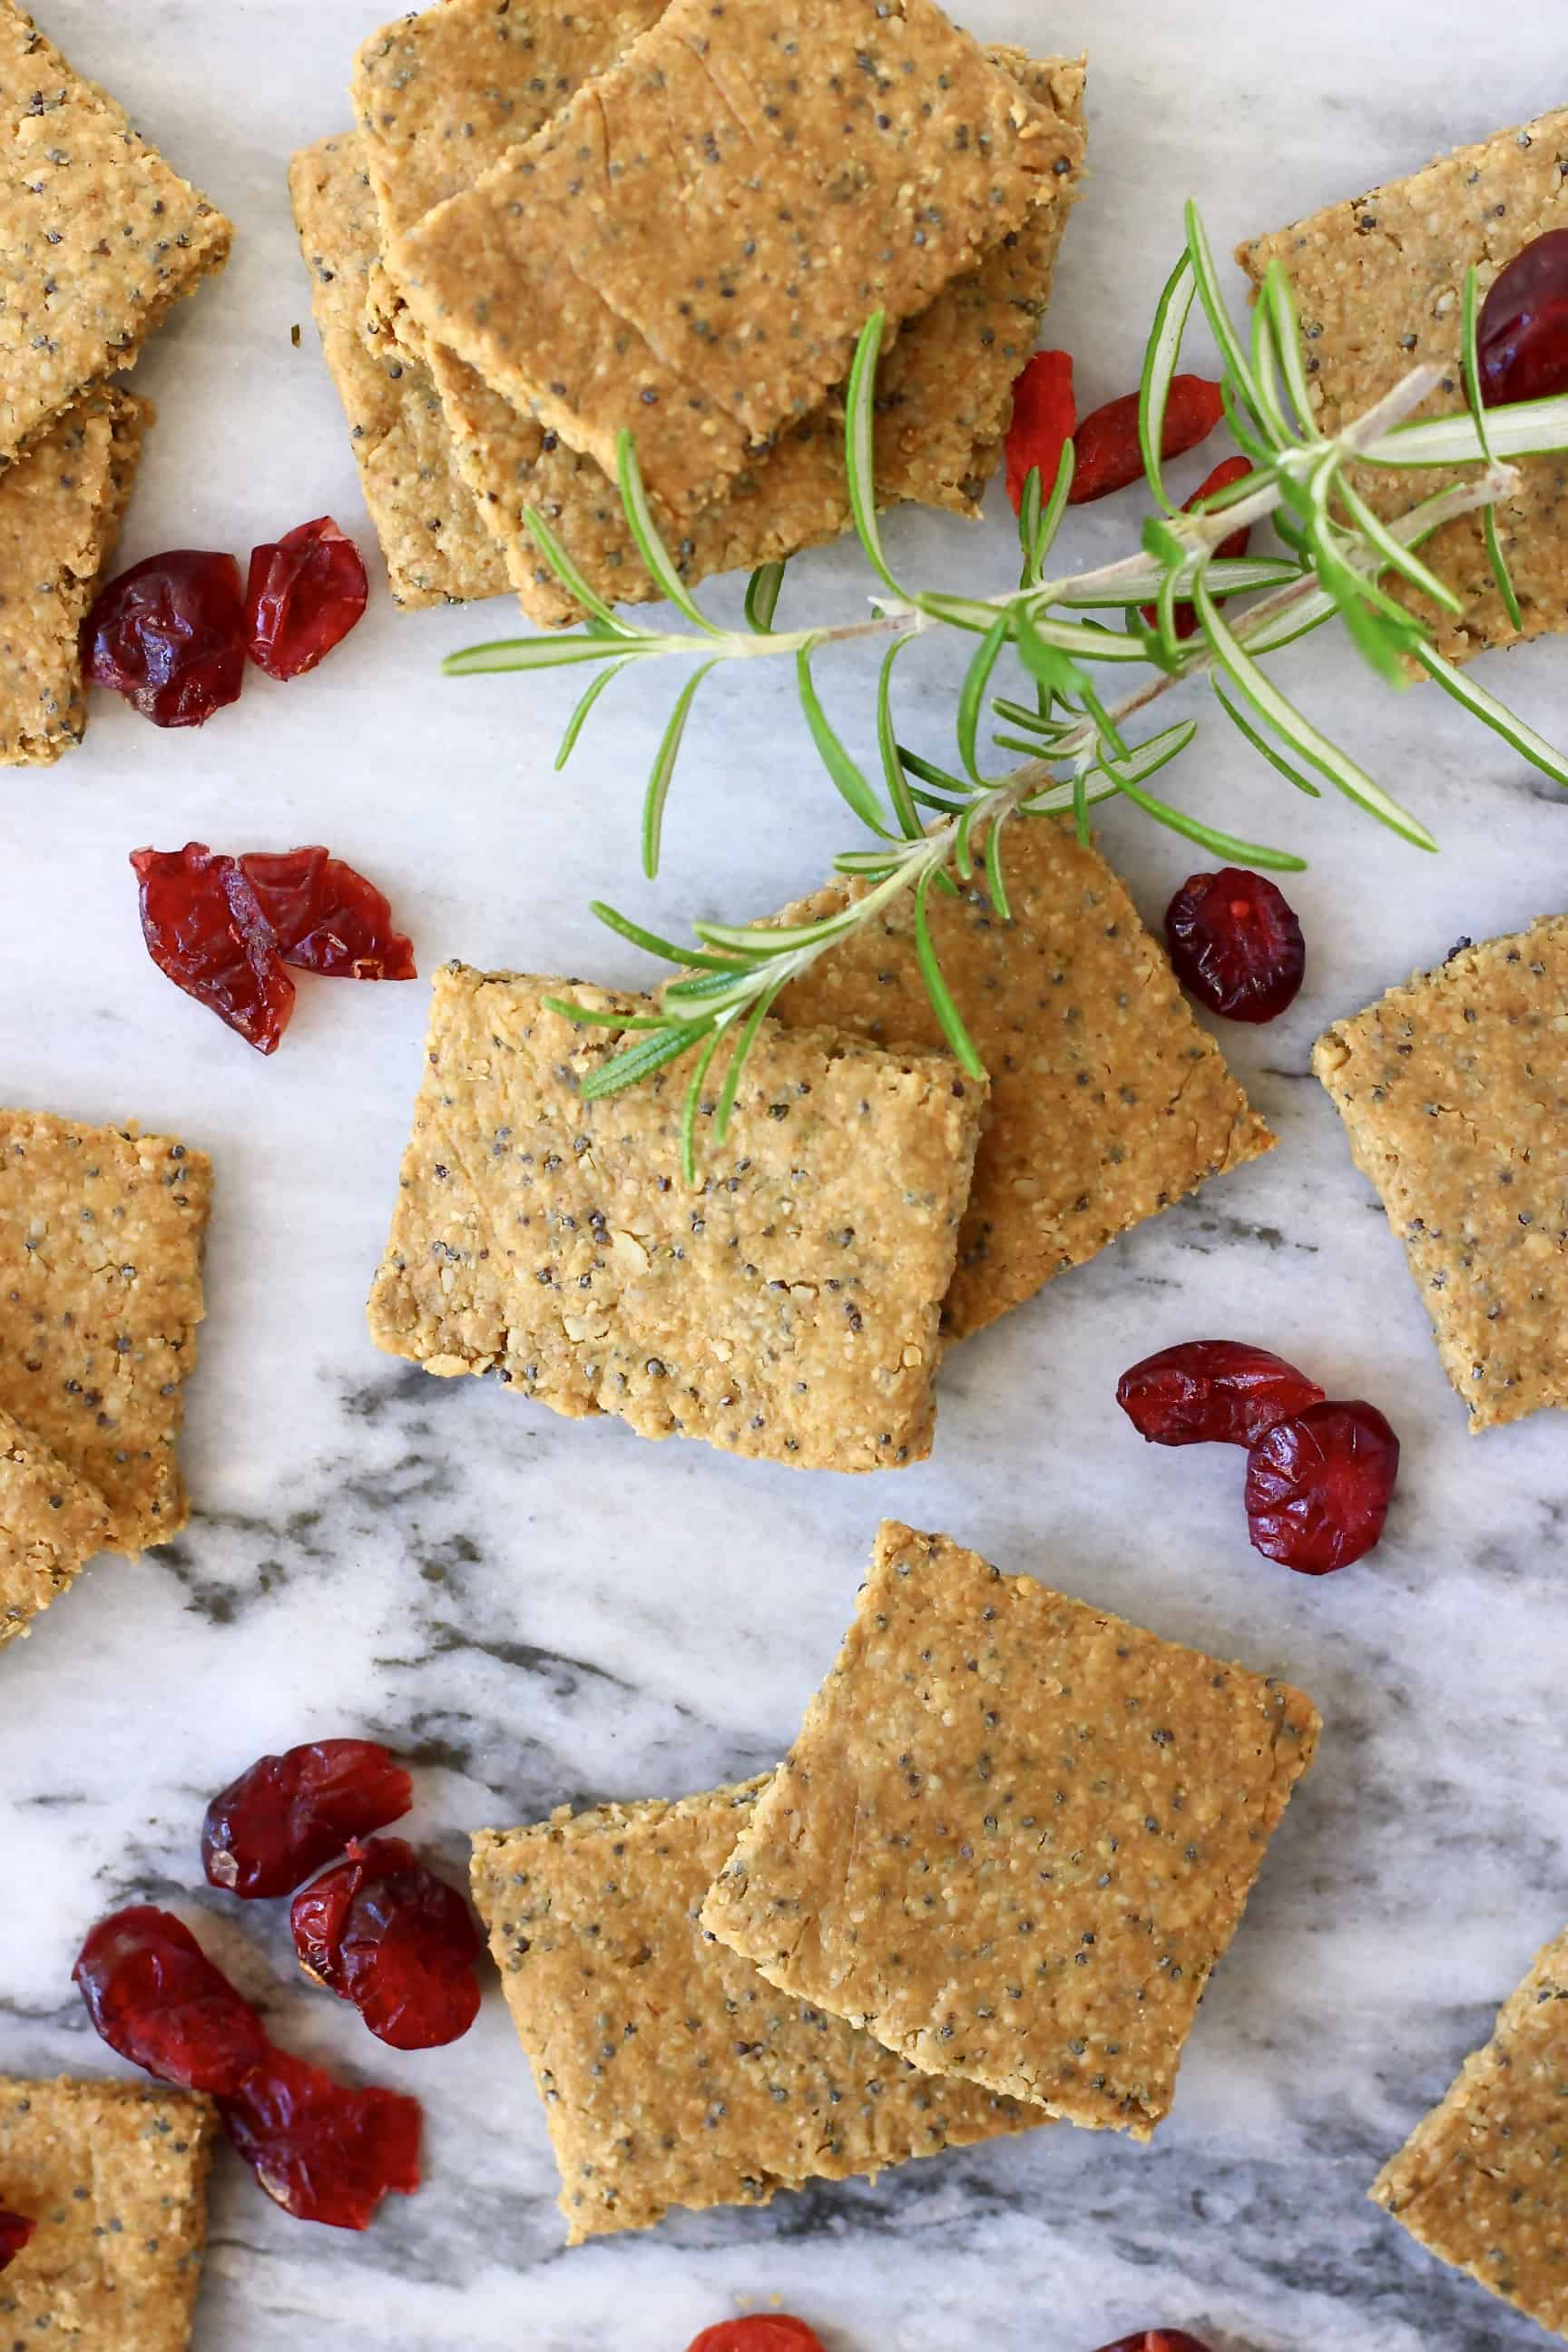 Several square gluten-free vegan crackers with dried cranberries and rosemary on a marble background